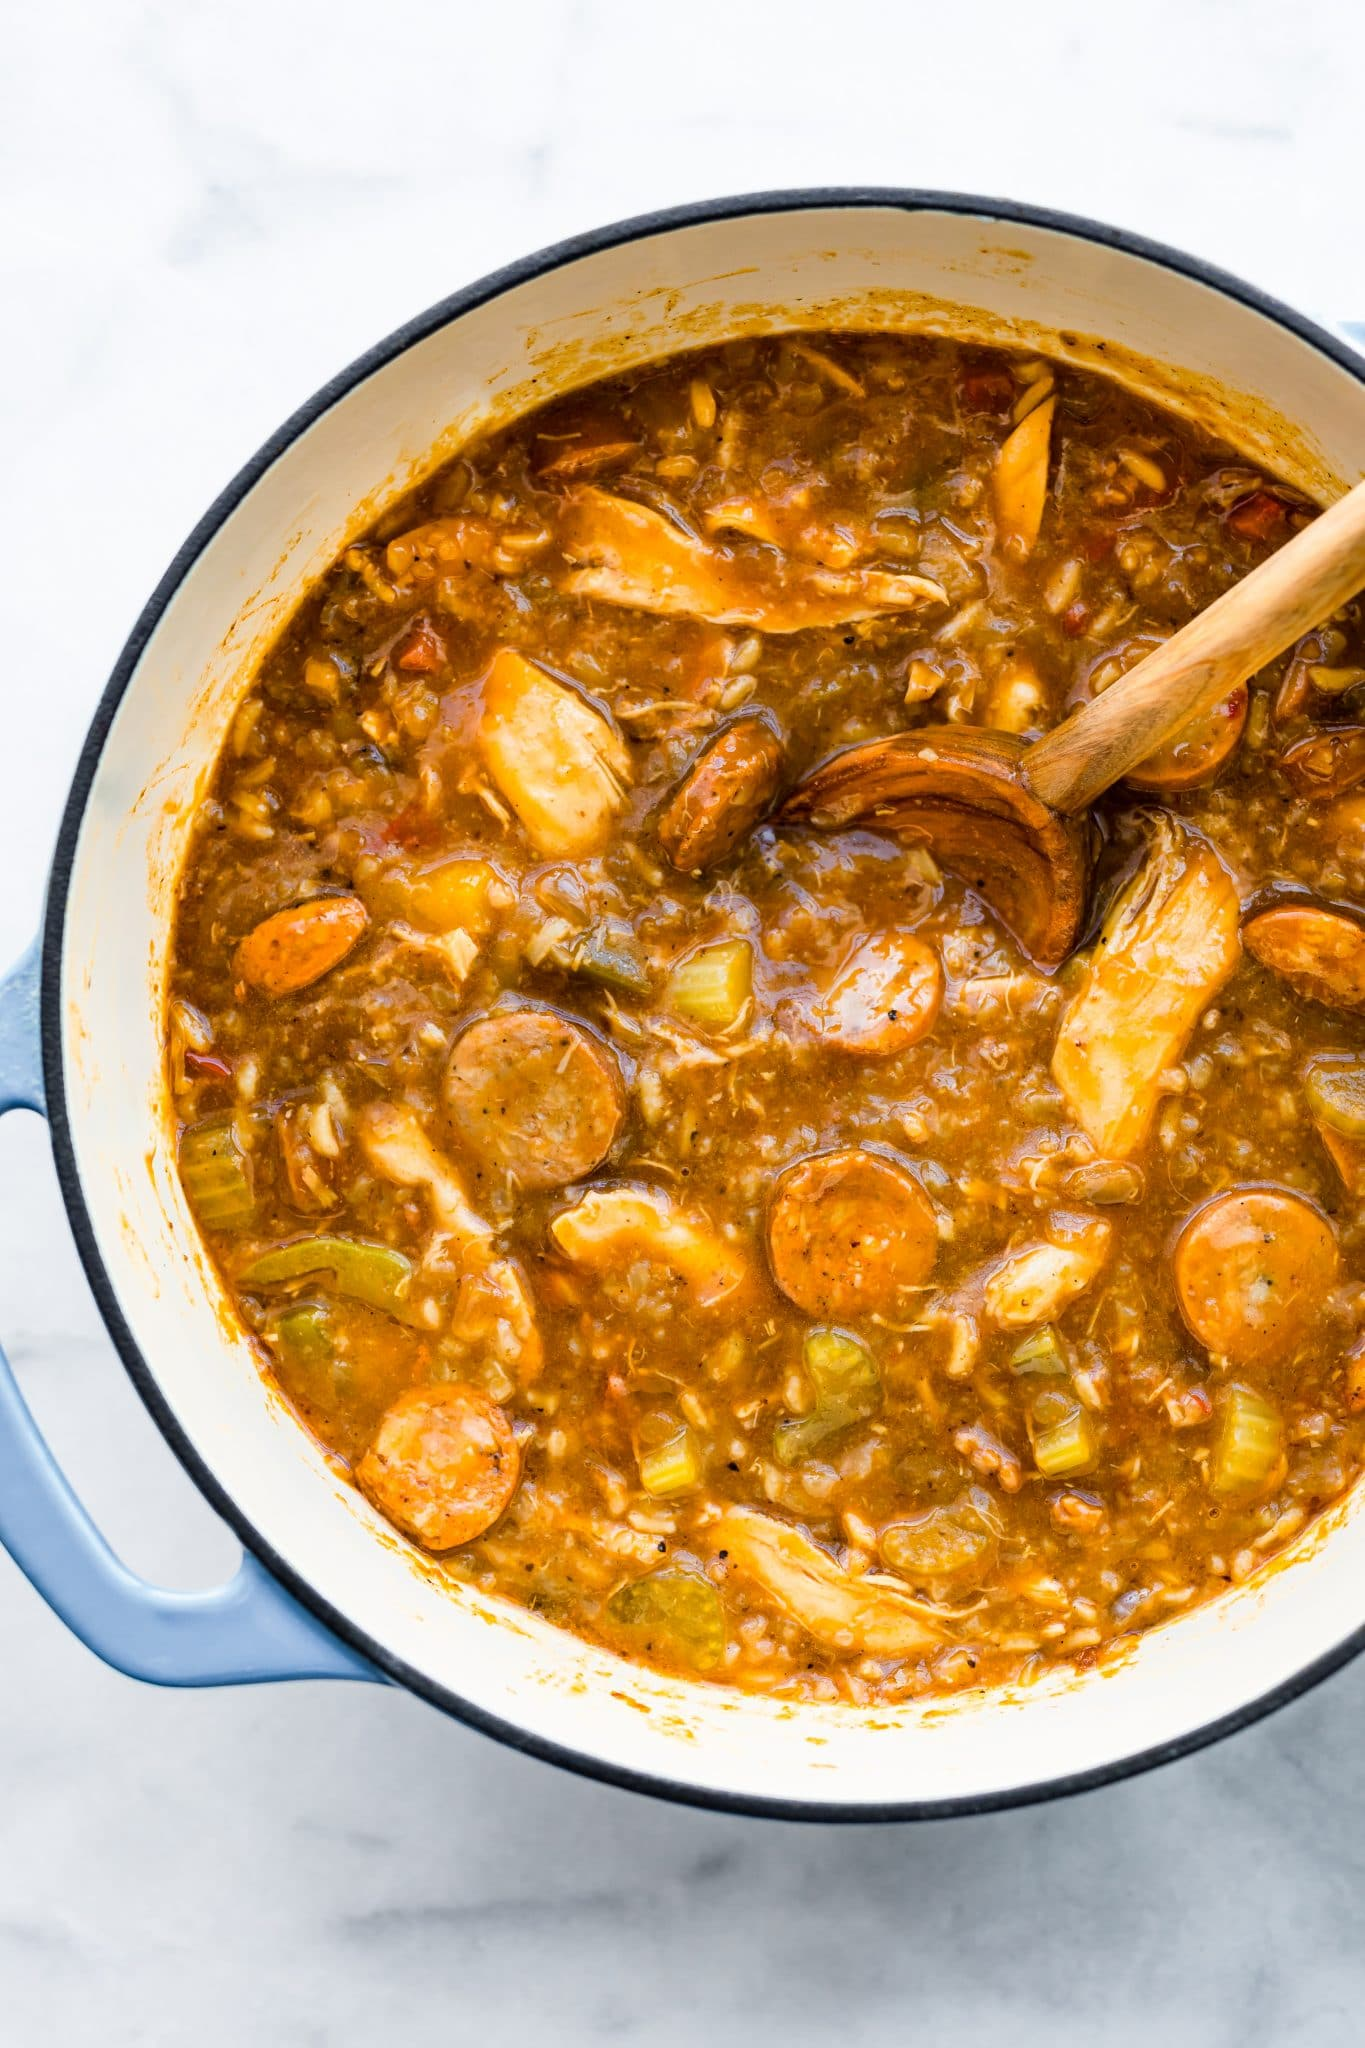 overhead image: large pot of gumbo made with leftover turkey